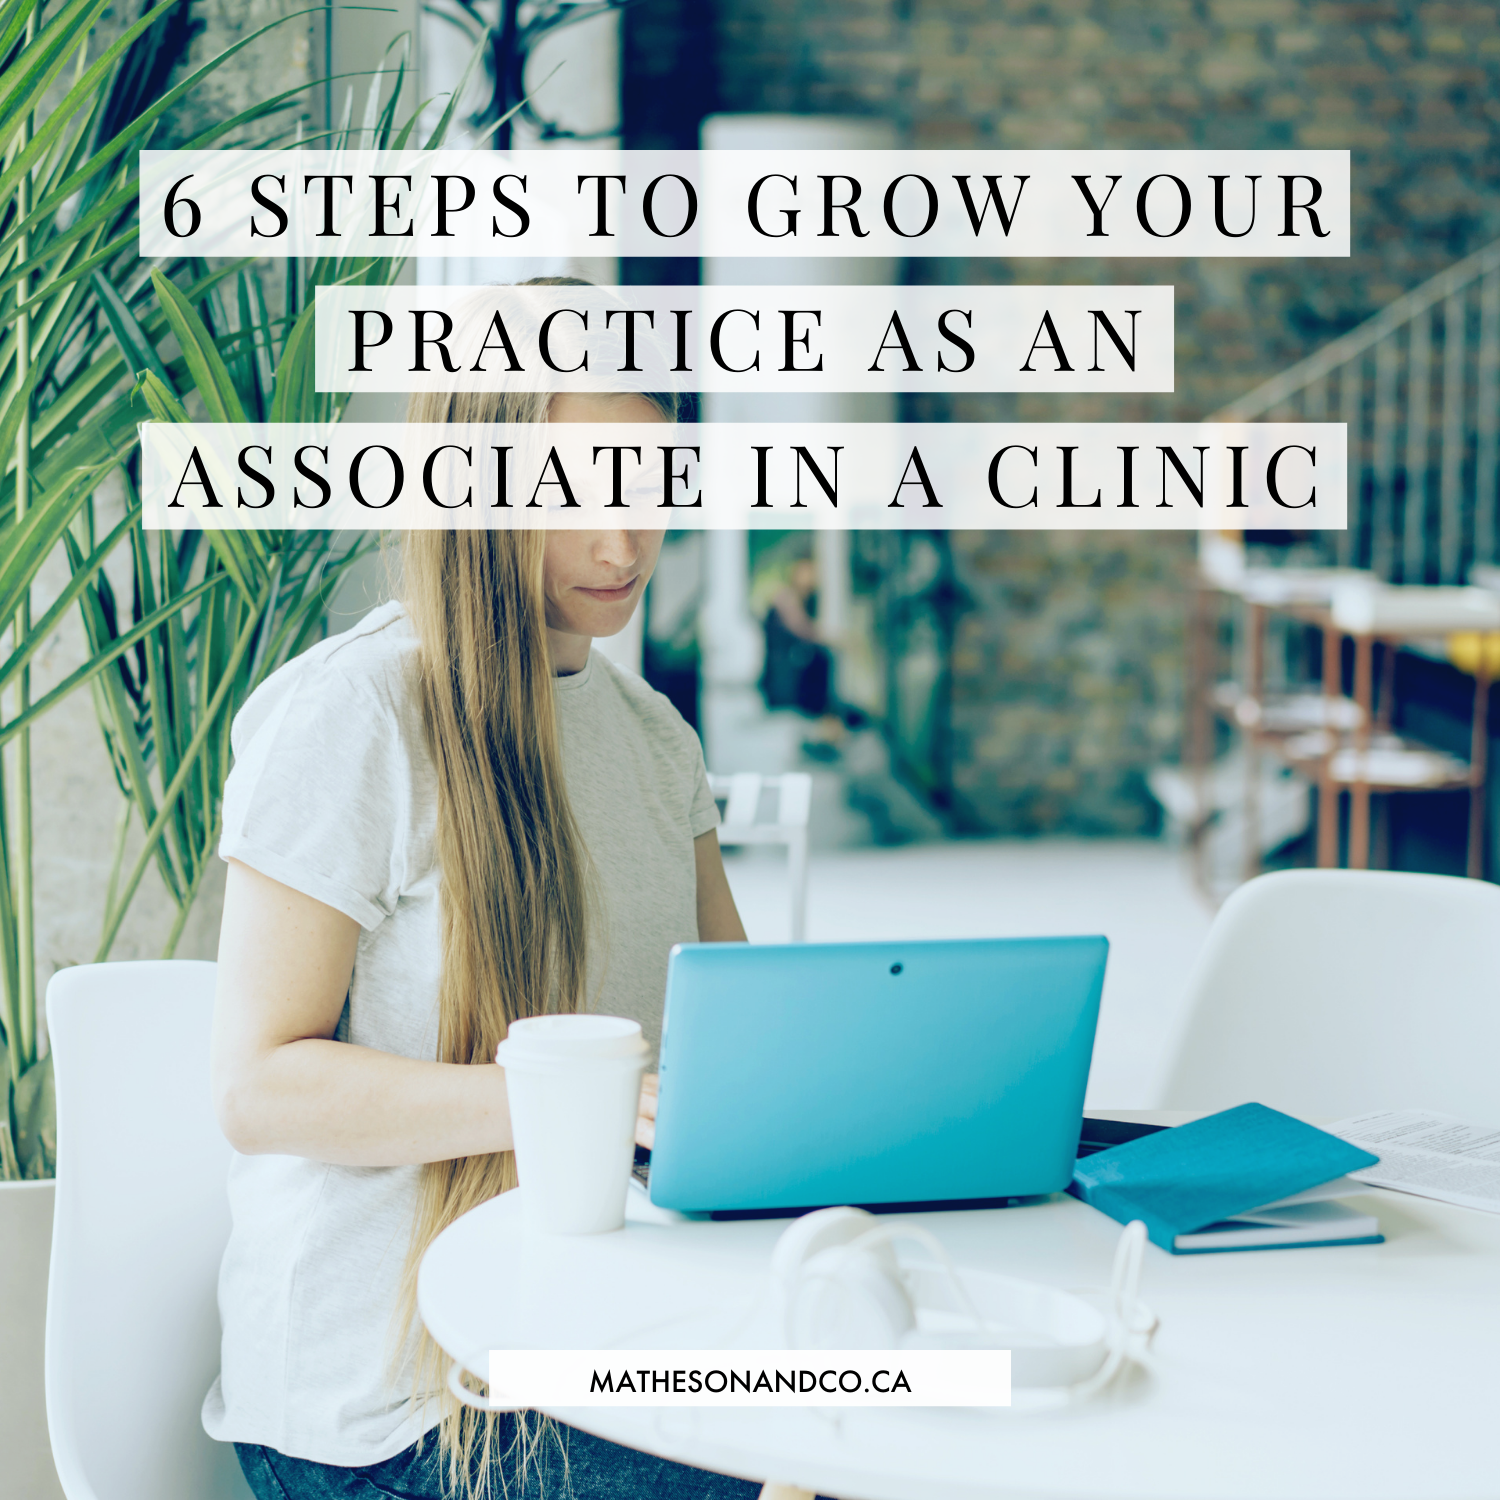 6 Steps to Grow Your Practice as an Associate in a Clinic